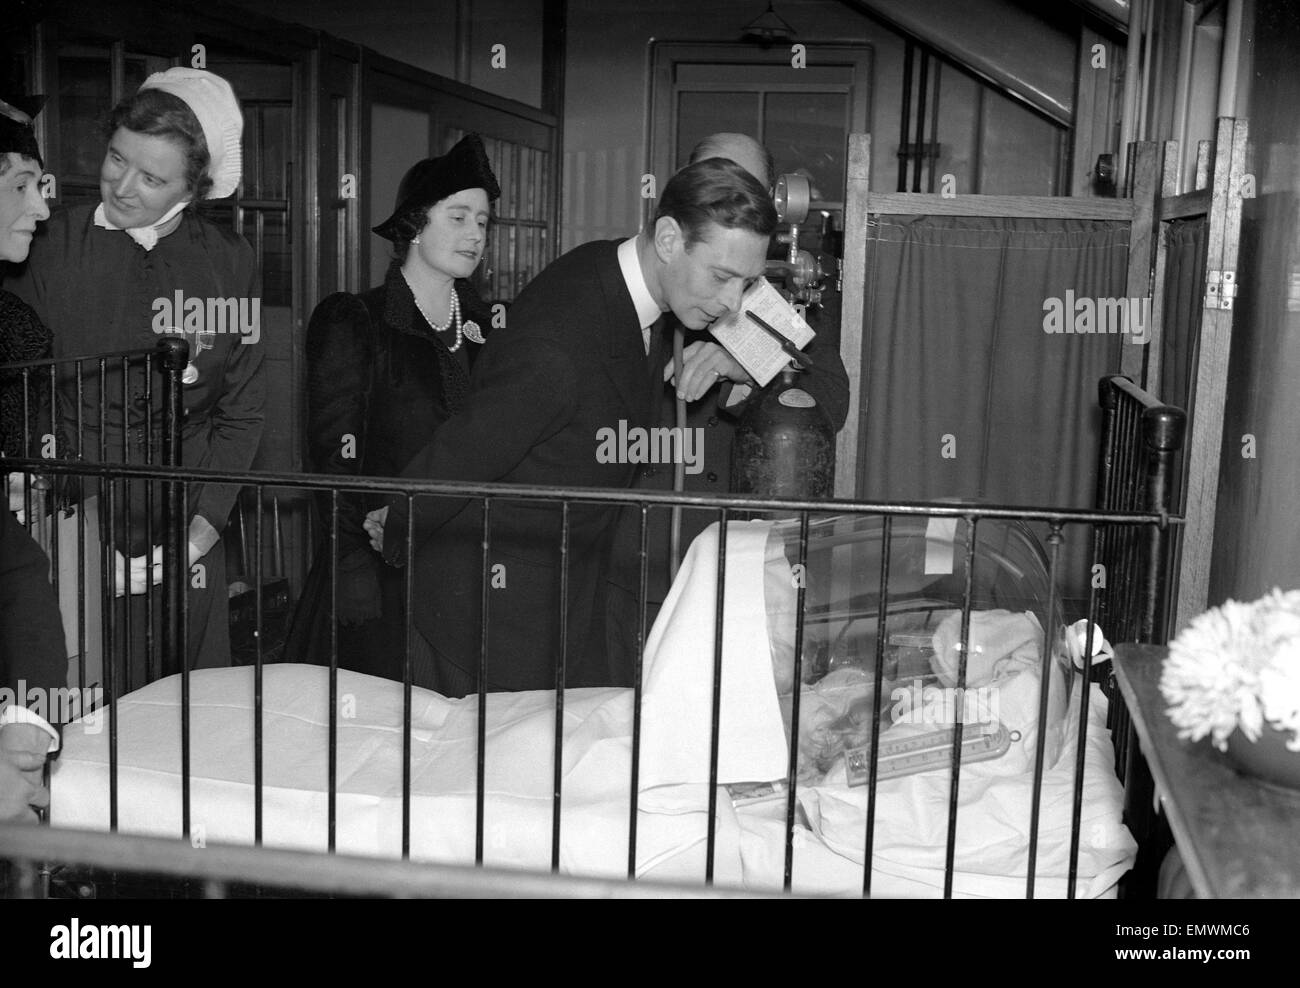 WW2 Air Raid Damage King and Queen at Children's Hospital. - Stock Image